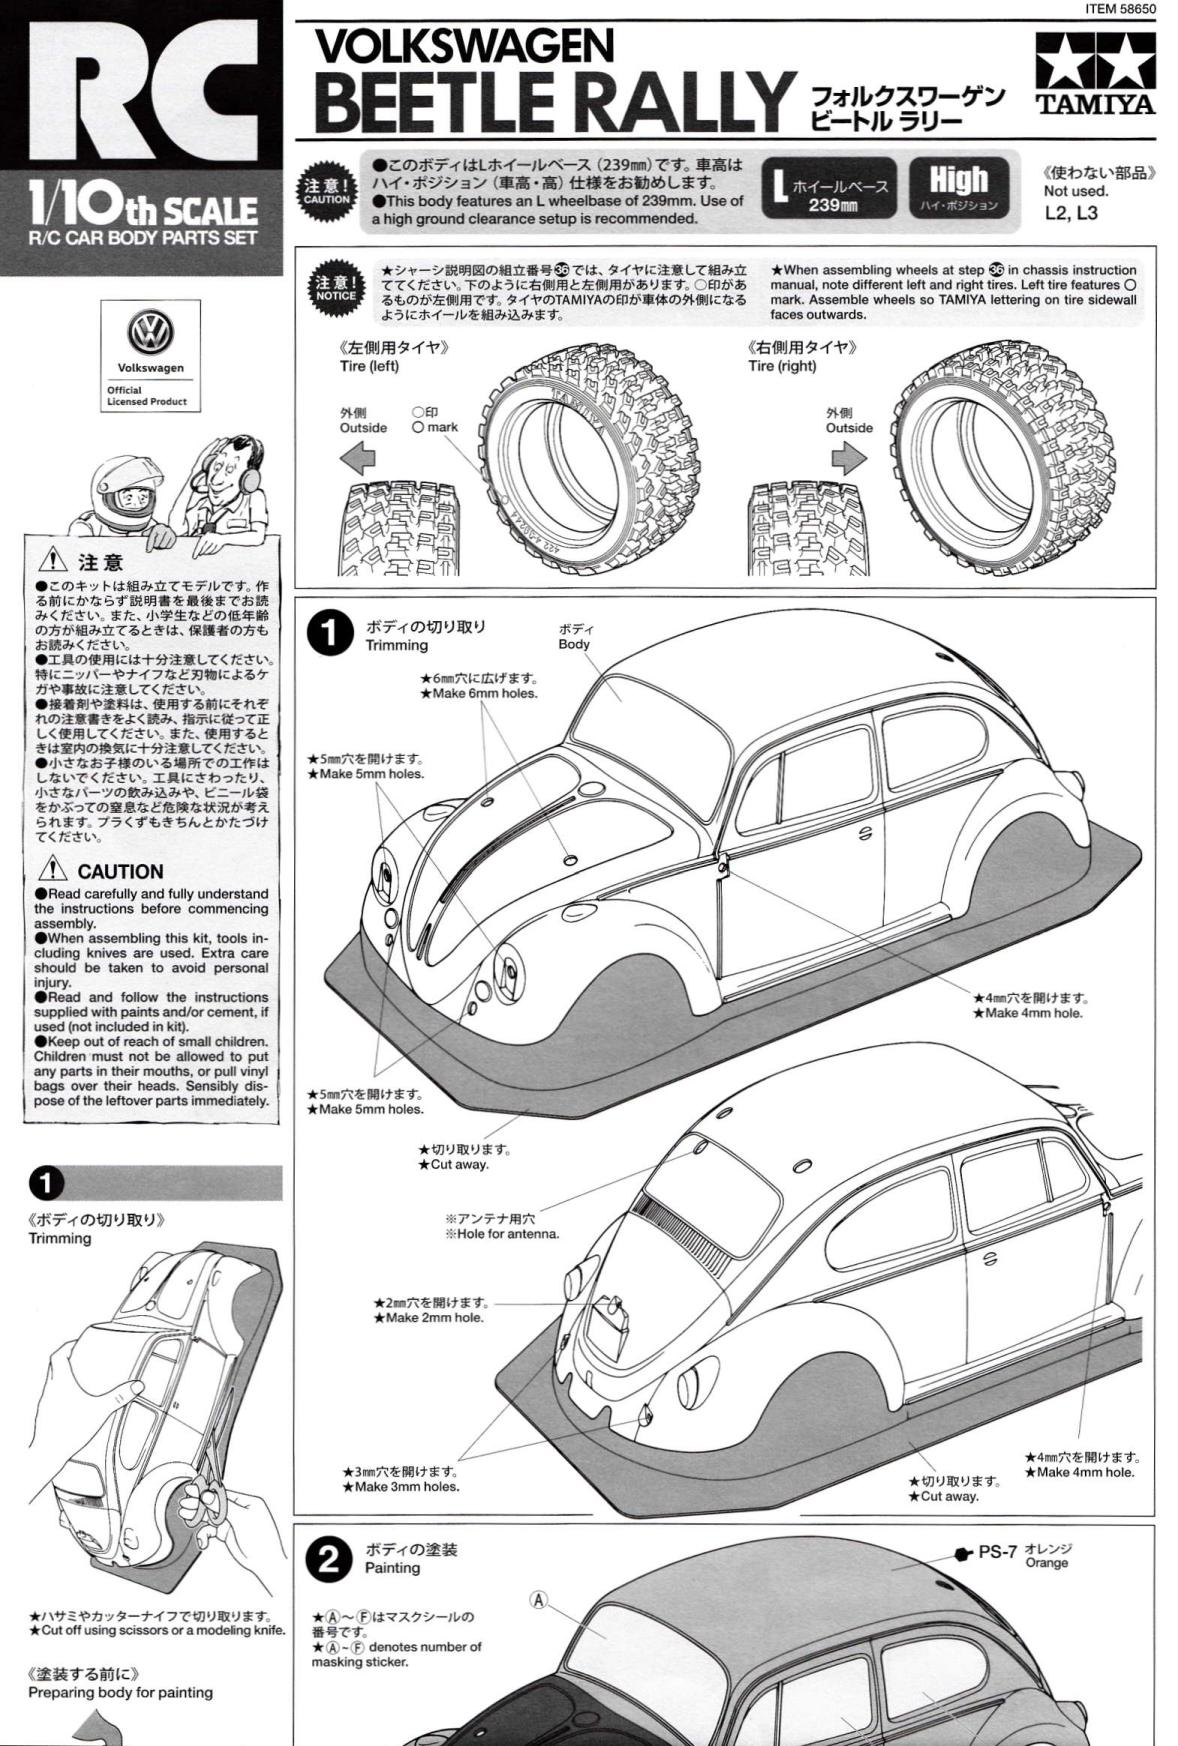 Lego volkswagen beetle instructions 10252, advanced models.